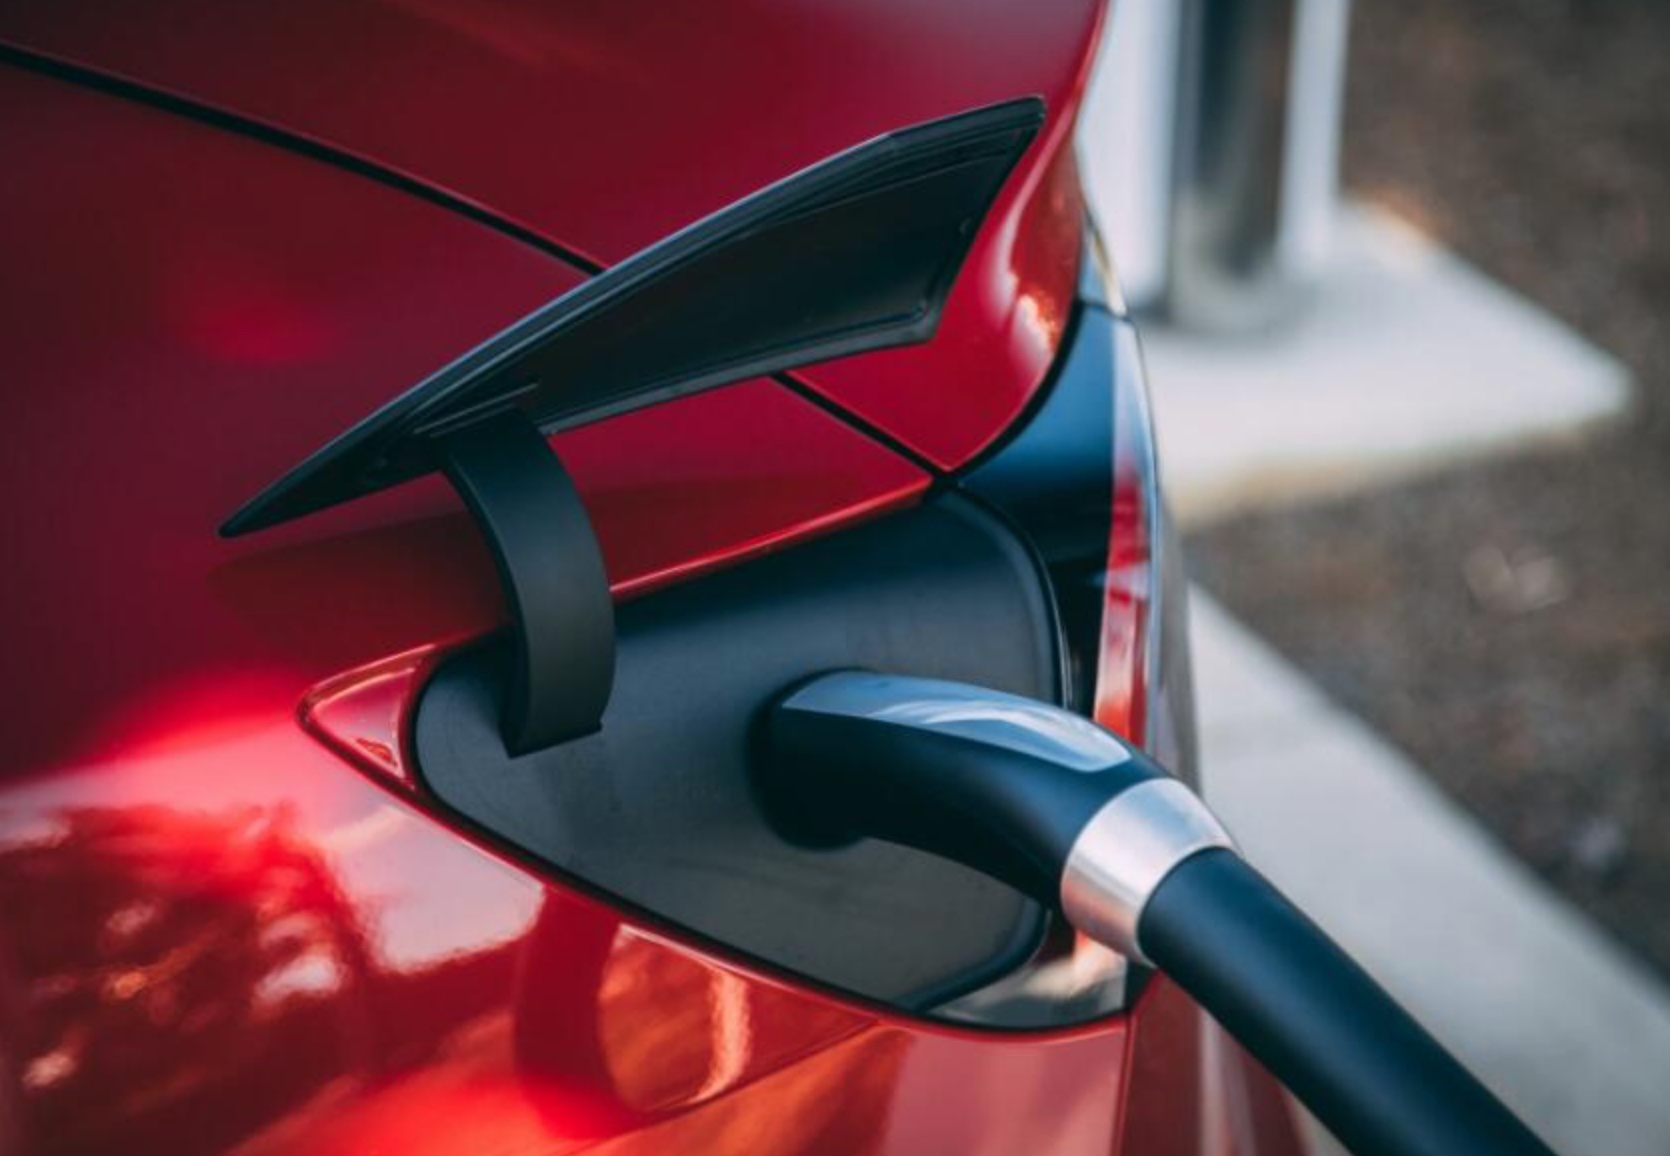 Analysts expect strong sales in China's new energy vehicle market in H2-cnTechPost